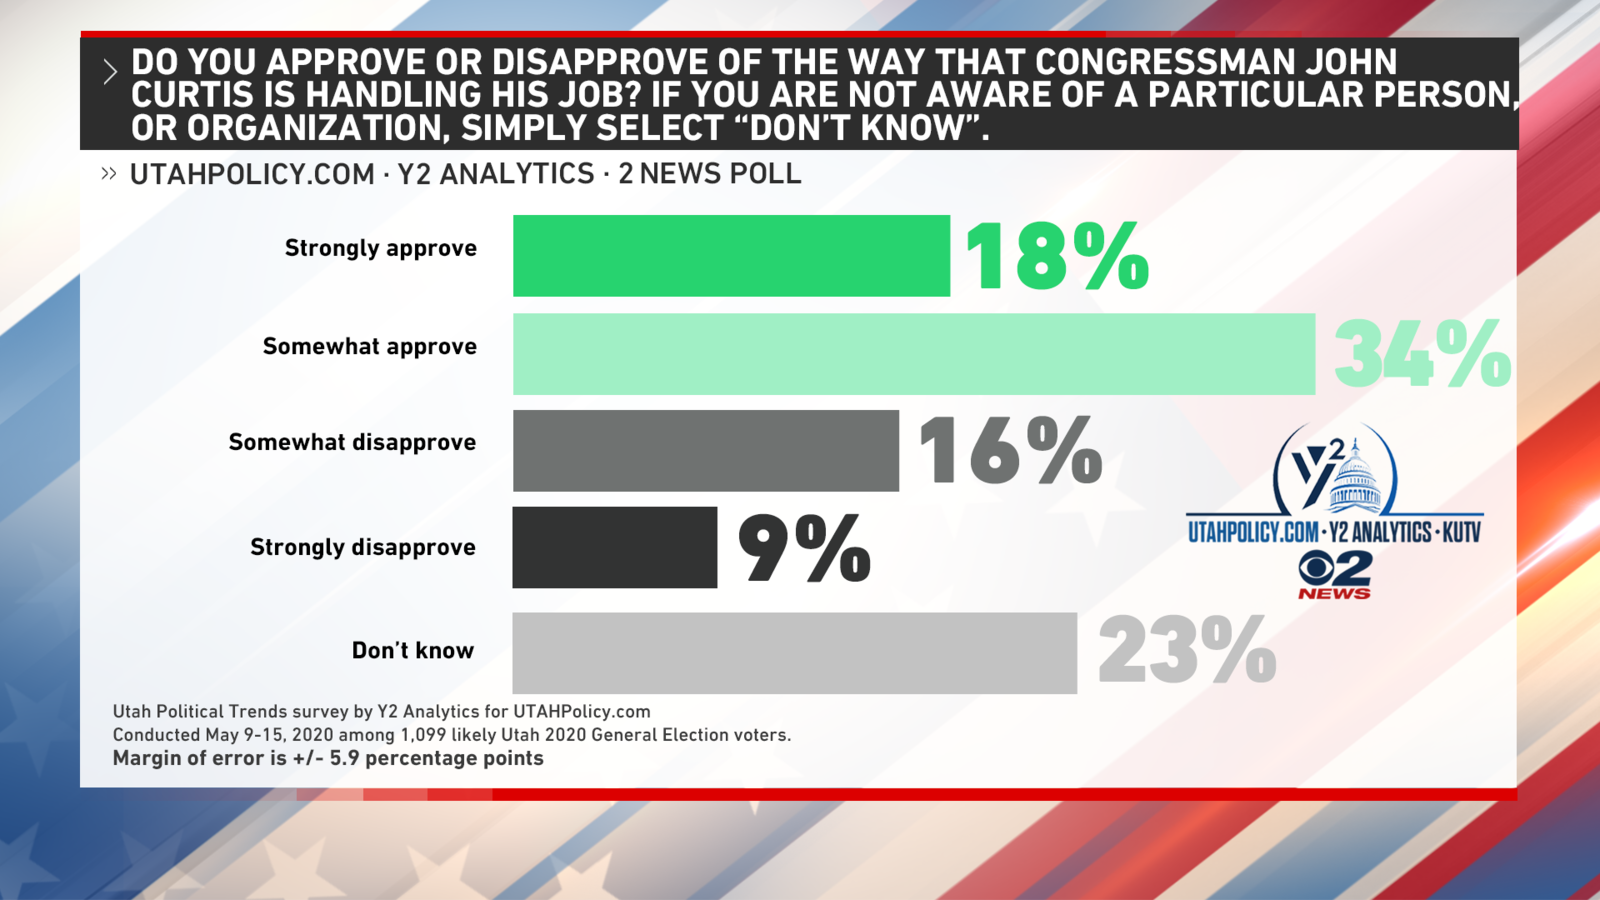 <p>The biggest jump in approval ratings belongs to Rep. John Curtis, who saw a 14% increase in approval from 40% in February to 54% now. (Photo: KUTV)</p>